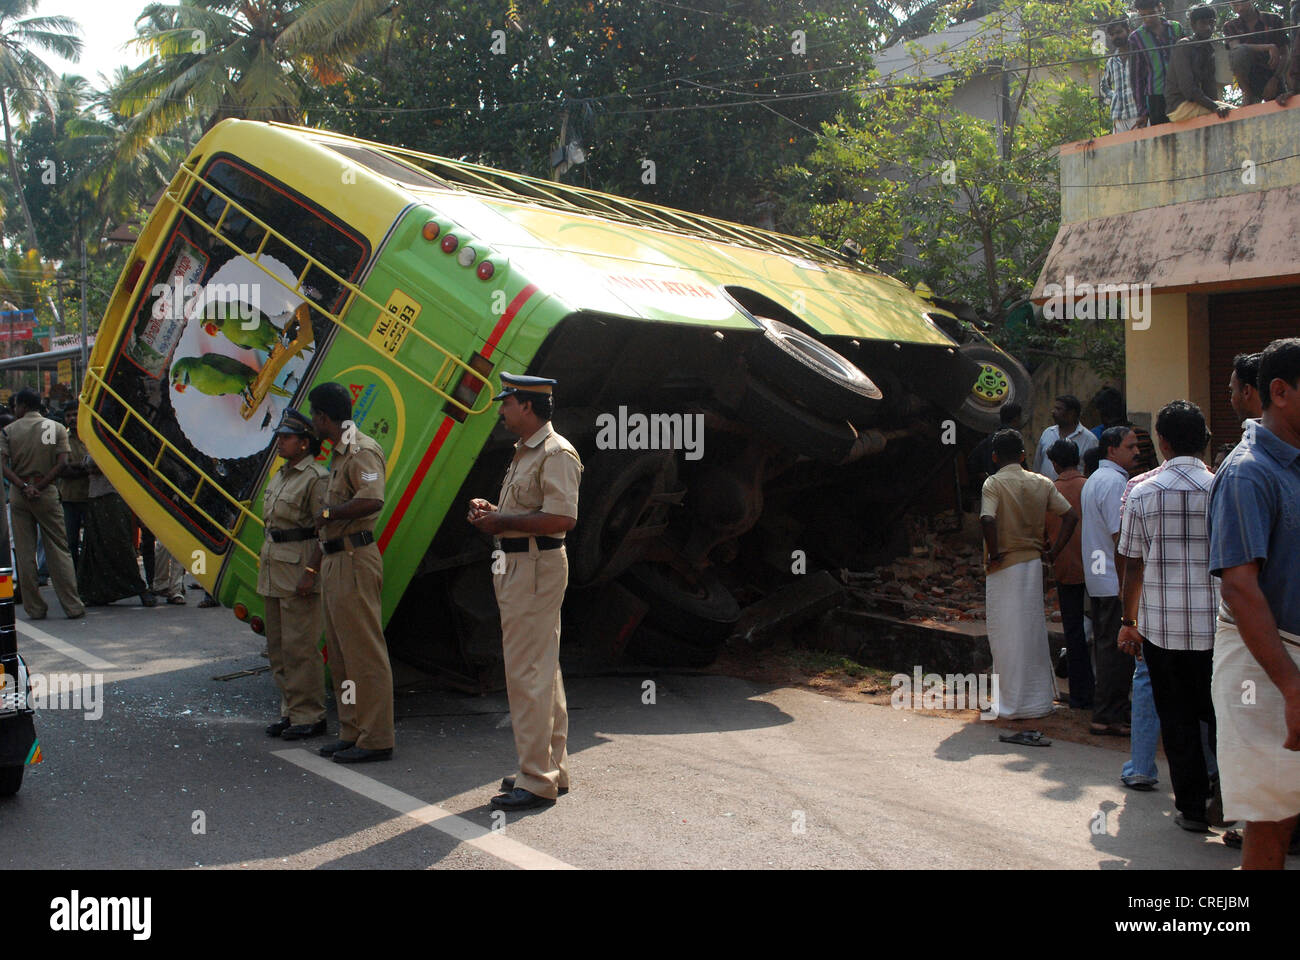 bus accident india stock photos & bus accident india stock images